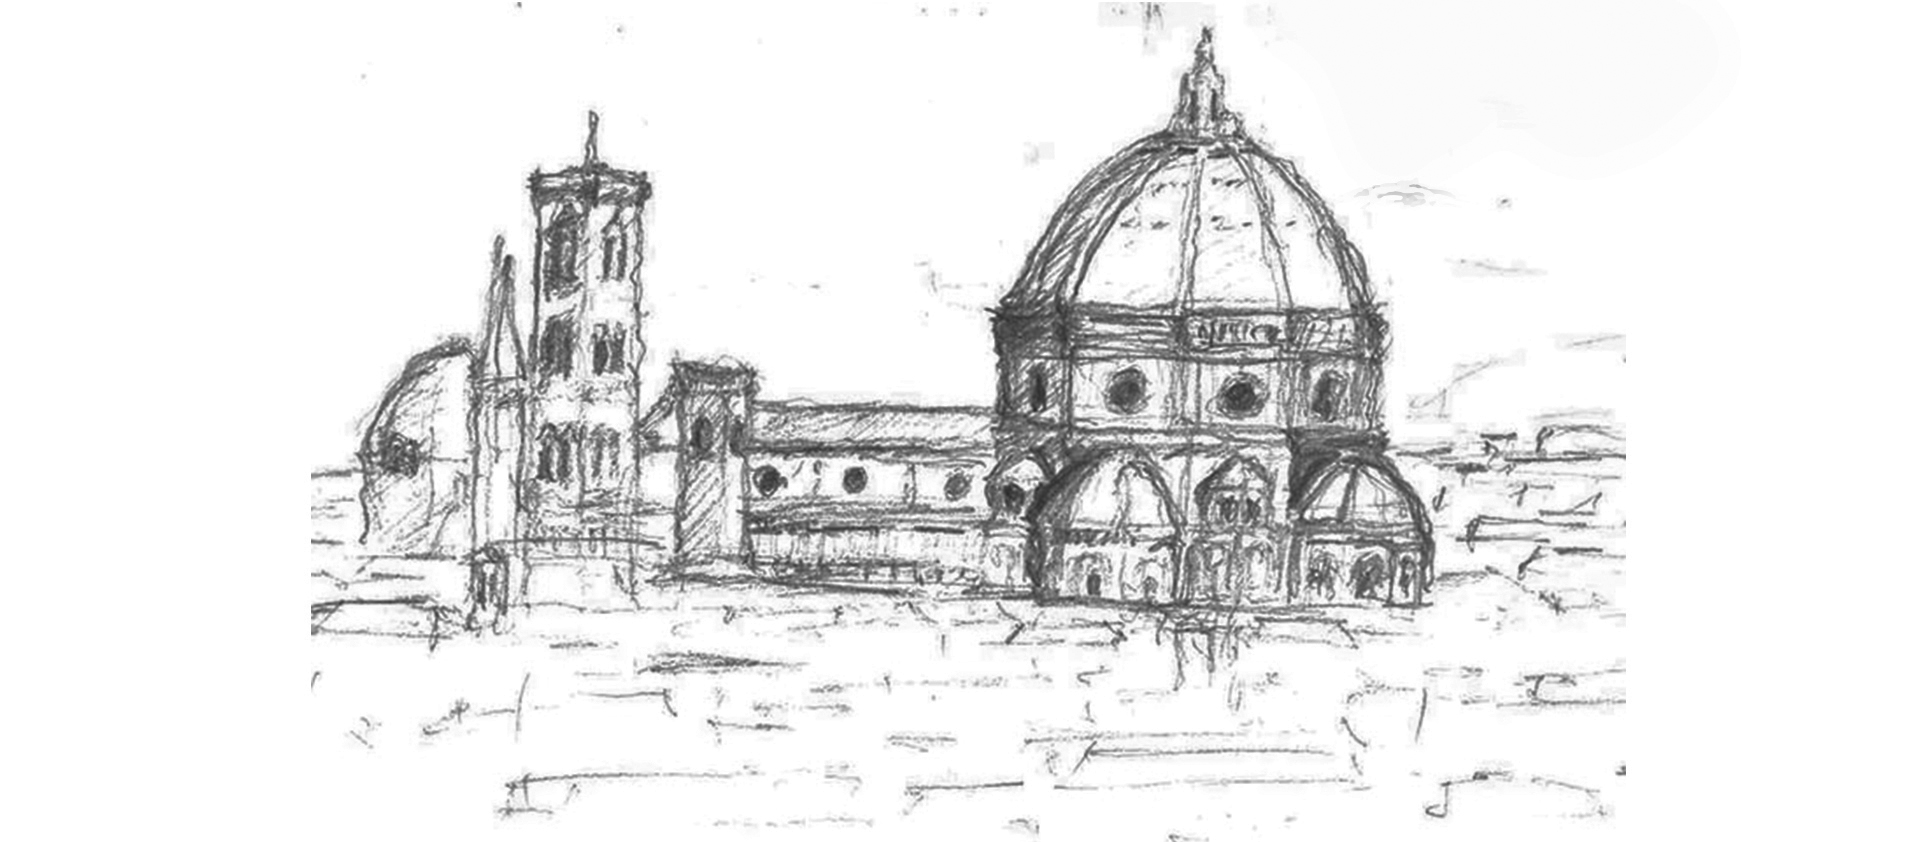 simple architectural sketches.  Architectural The Florence Institute Of Design International  Summer Architecture Tour  On Simple Architectural Sketches